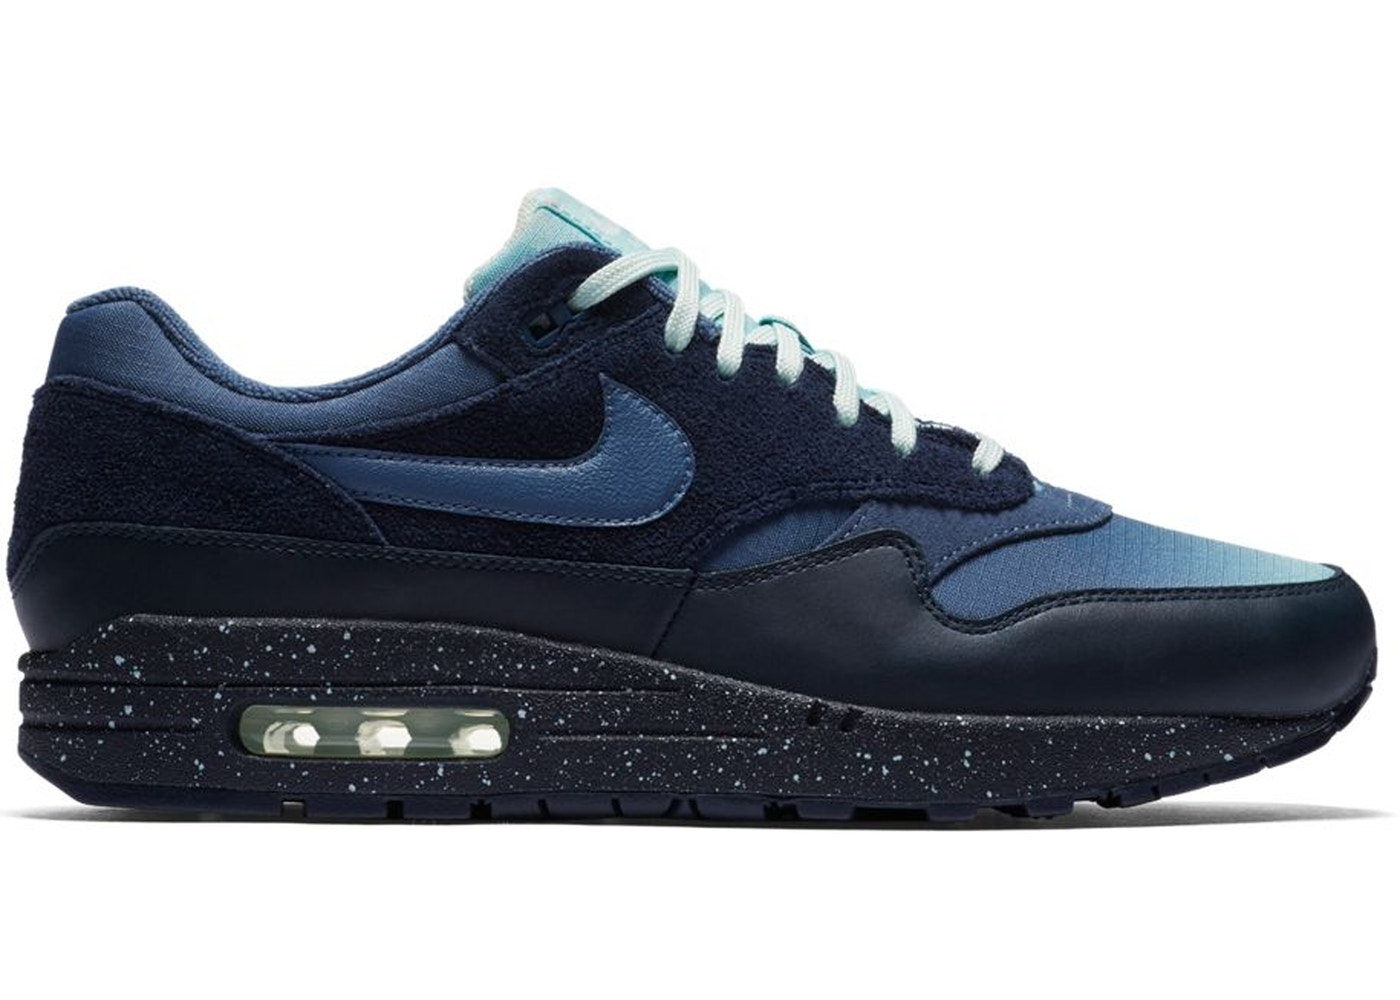 Air Max 1 Gradient Toe Obsidian